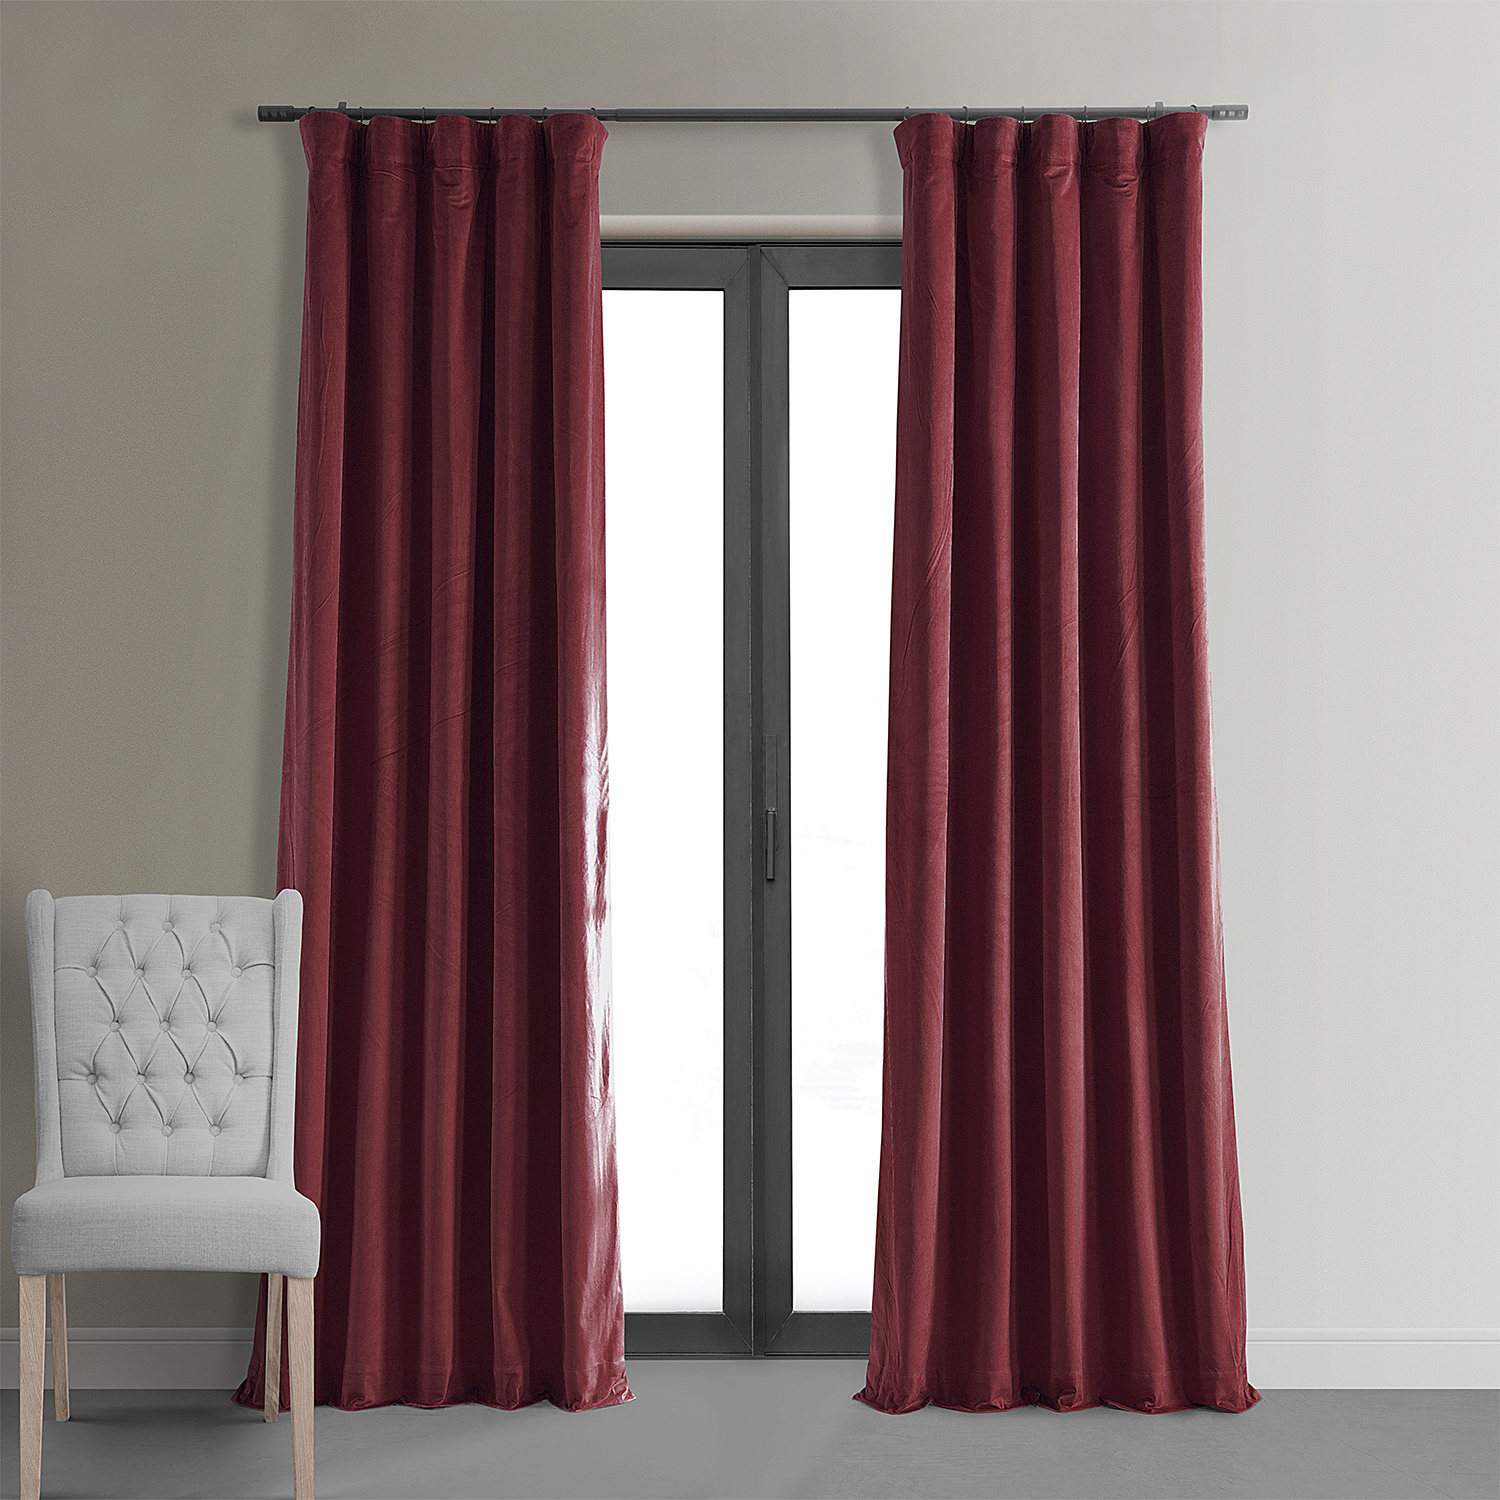 Design Velvet Curtains signature burgundy blackout velvet curtains drapes curtain